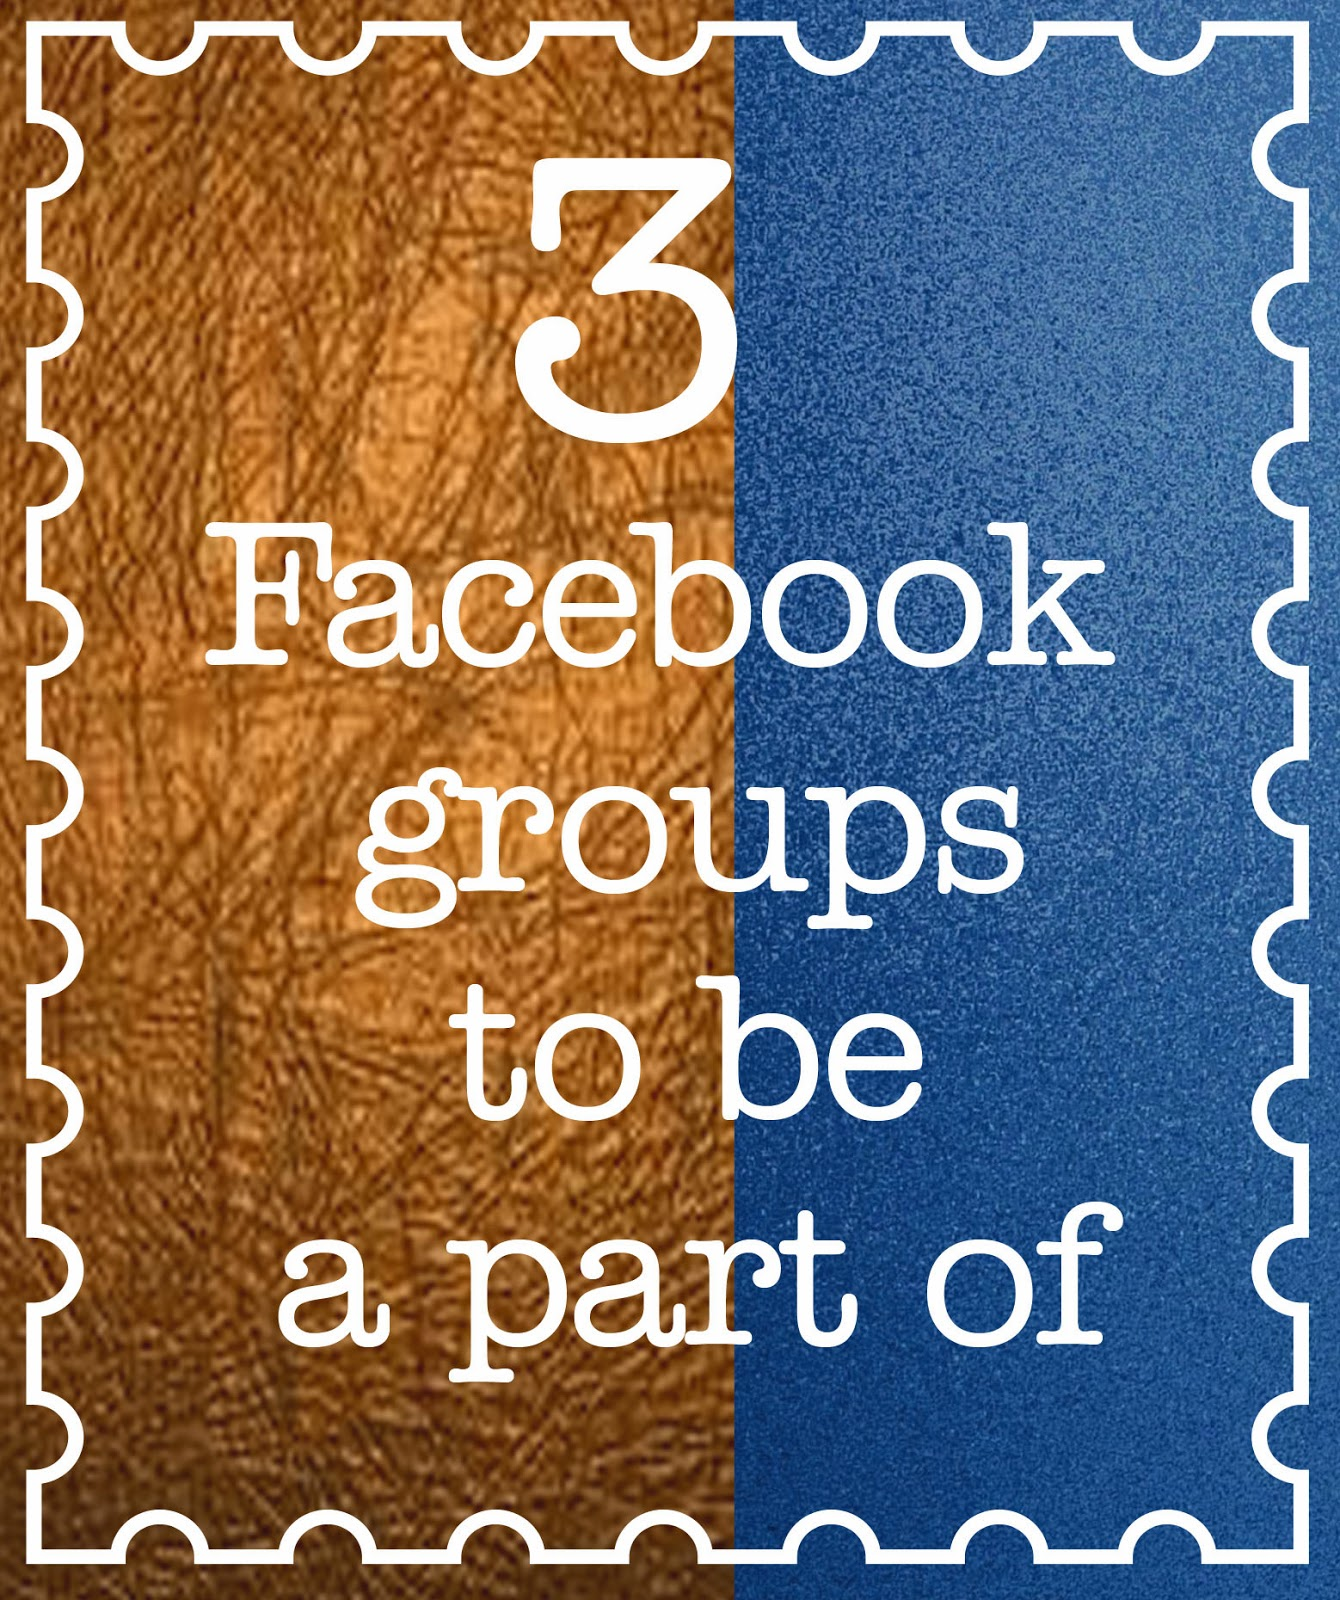 3 Facebook groups to be a part of